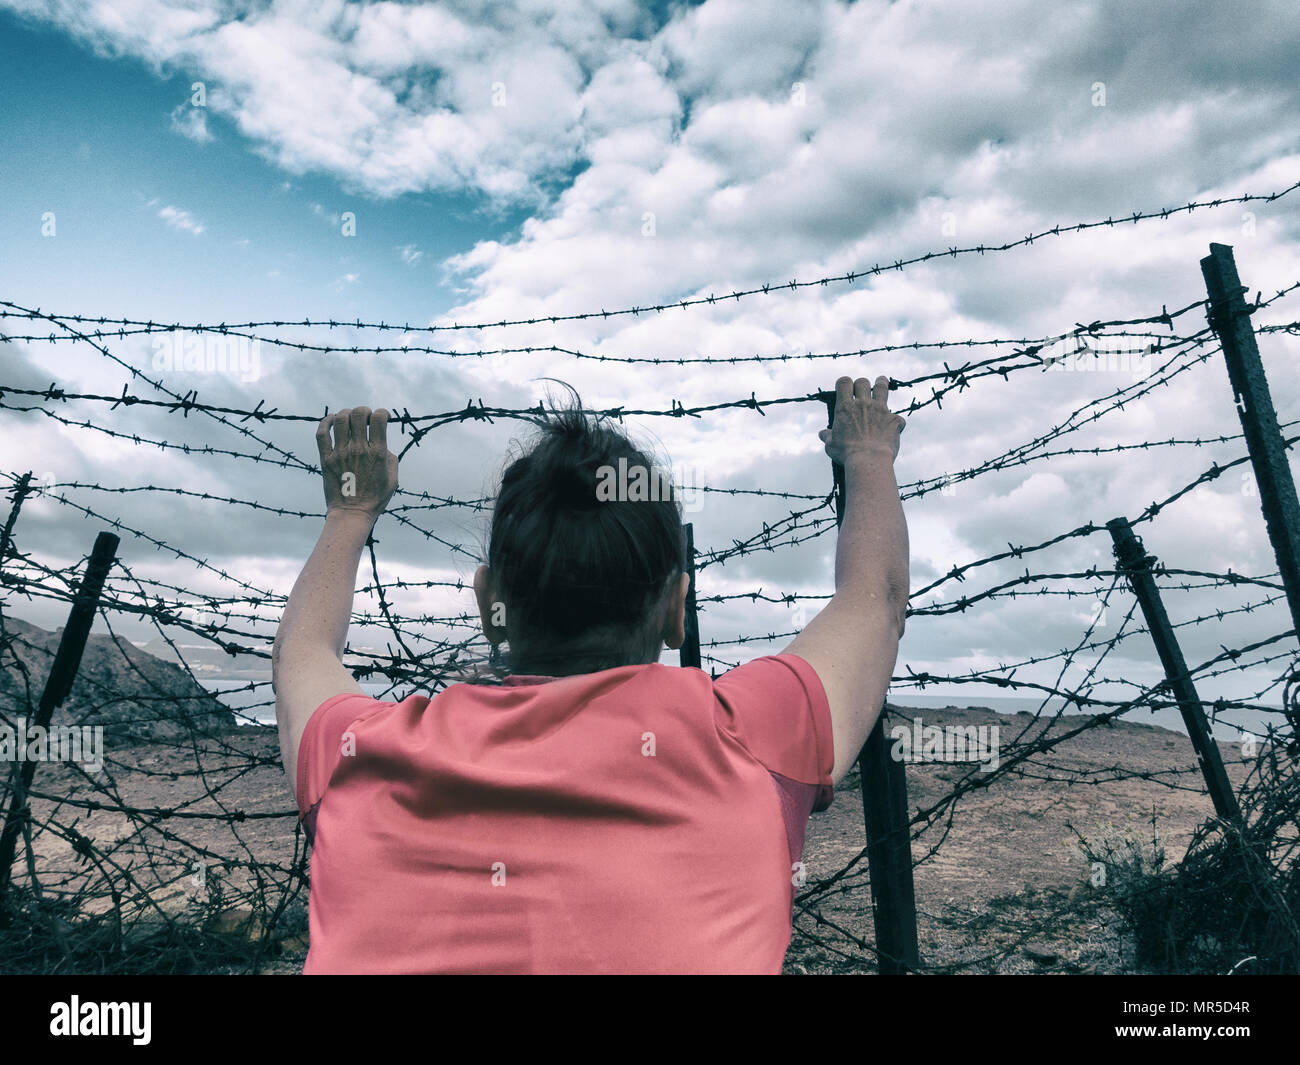 Woman behind barbed wire fence: asylum, Brexit, illegal immigration, human trafficking/slavery...,concept image. - Stock Image